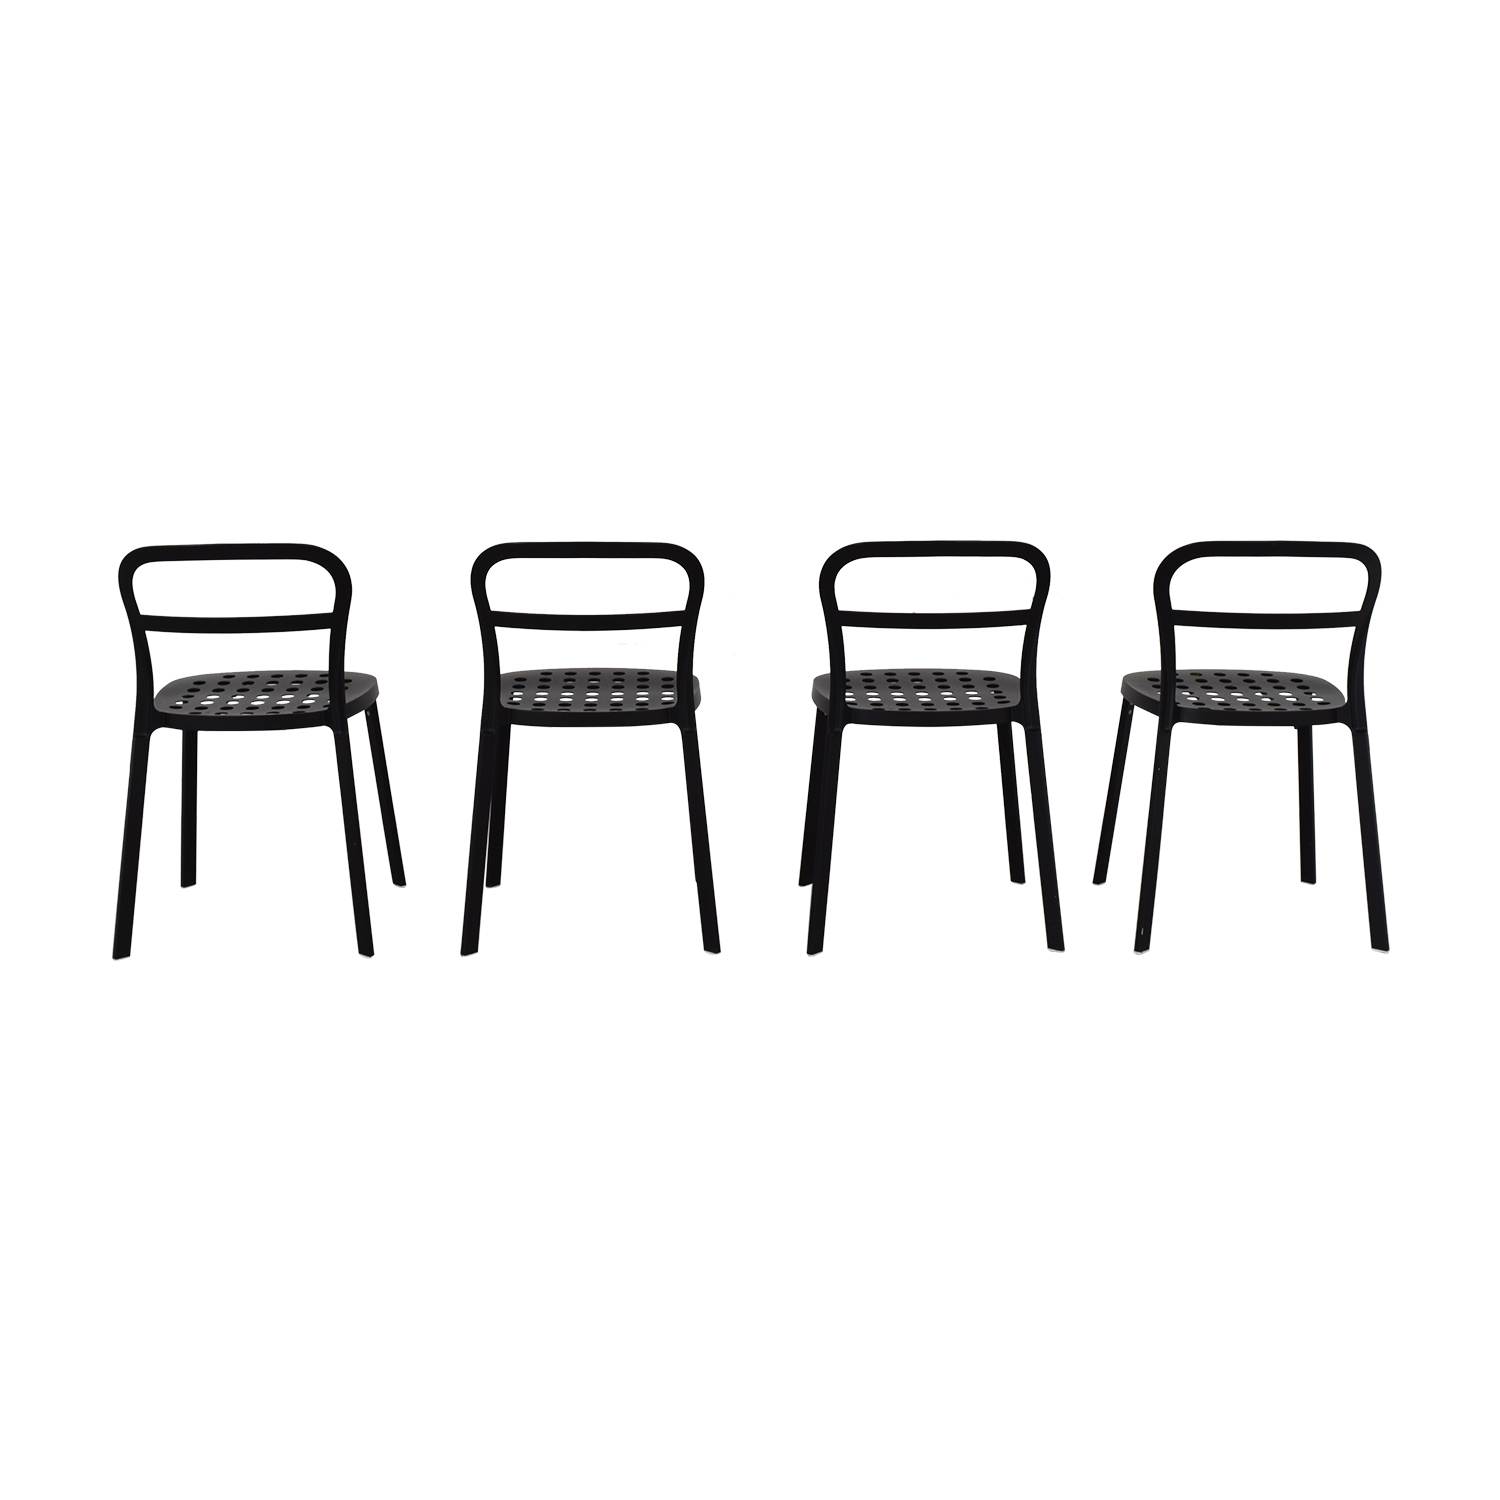 IKEA Black Metal Chairs / Dining Chairs